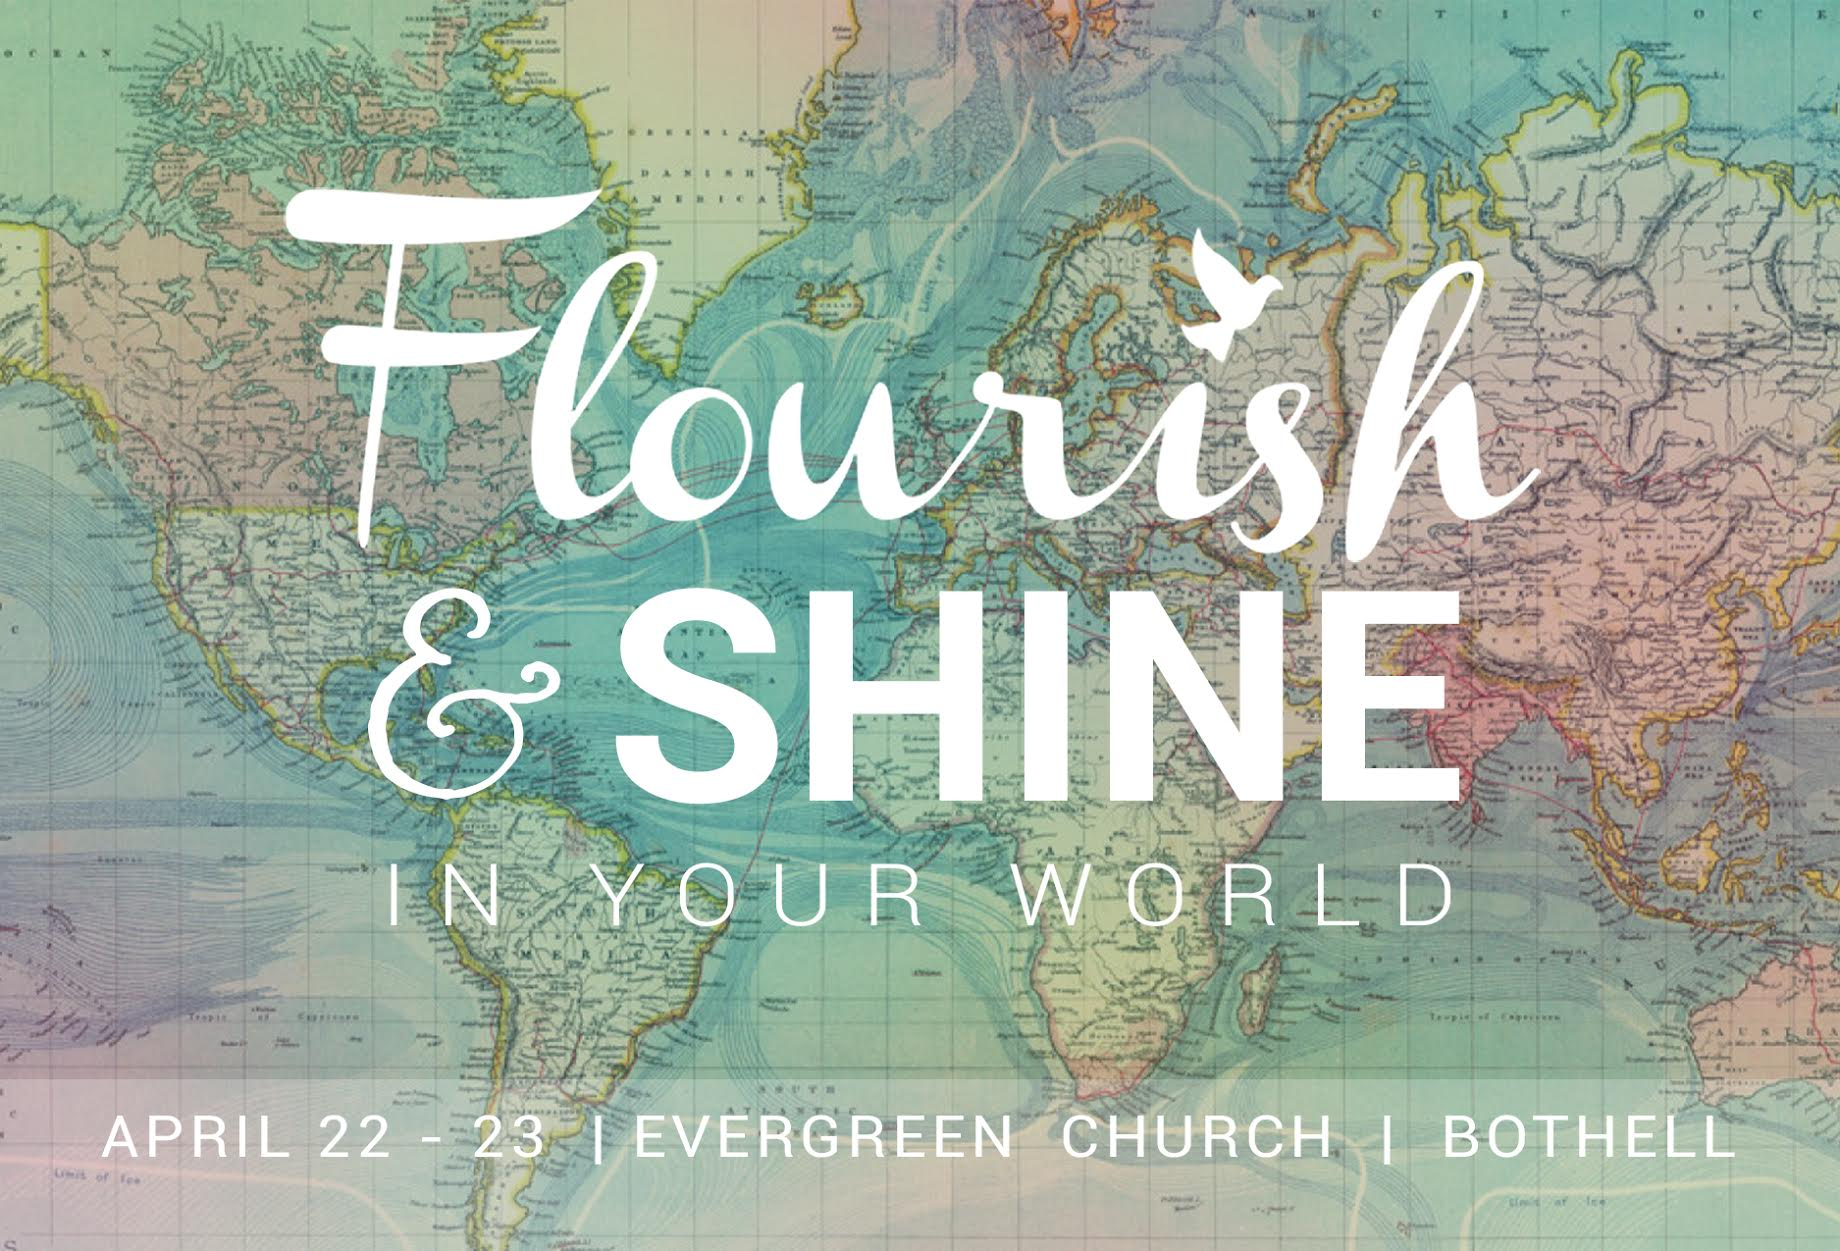 Brian Keynotes at Flourish & Shine 2016